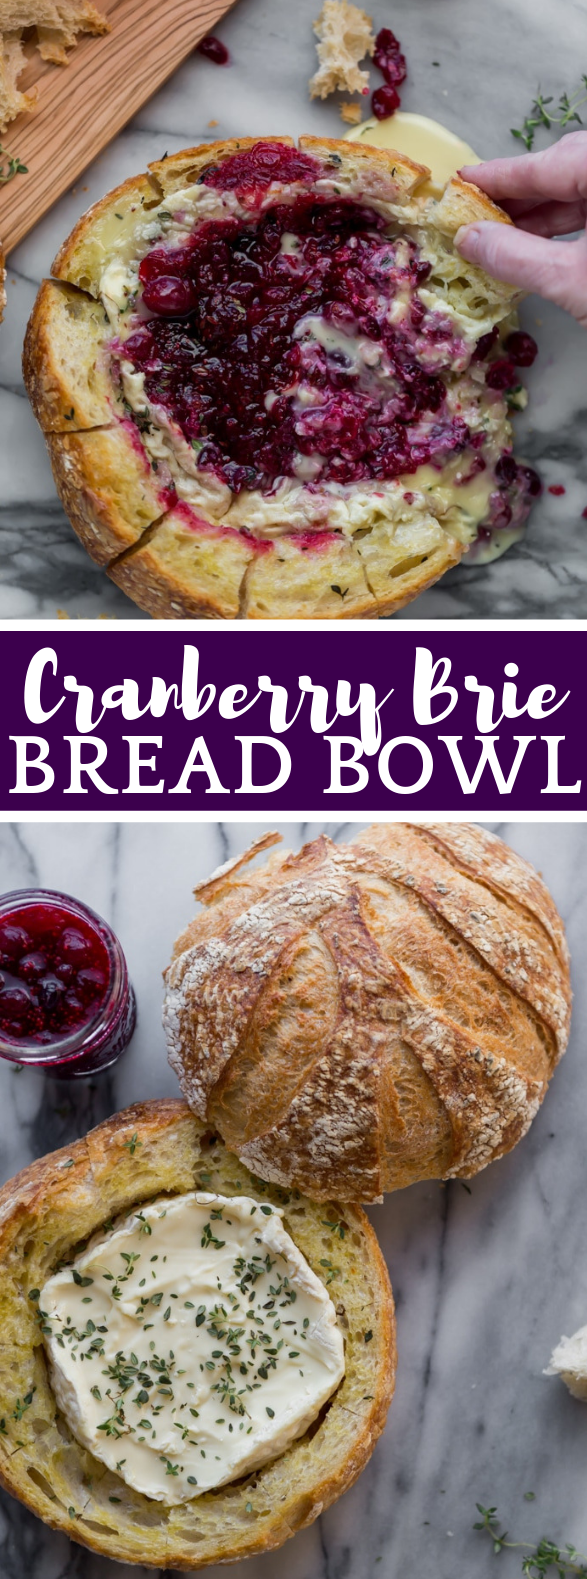 BAKED CRANBERRY BRIE BREAD BOWL  #appetizer #holidayfood